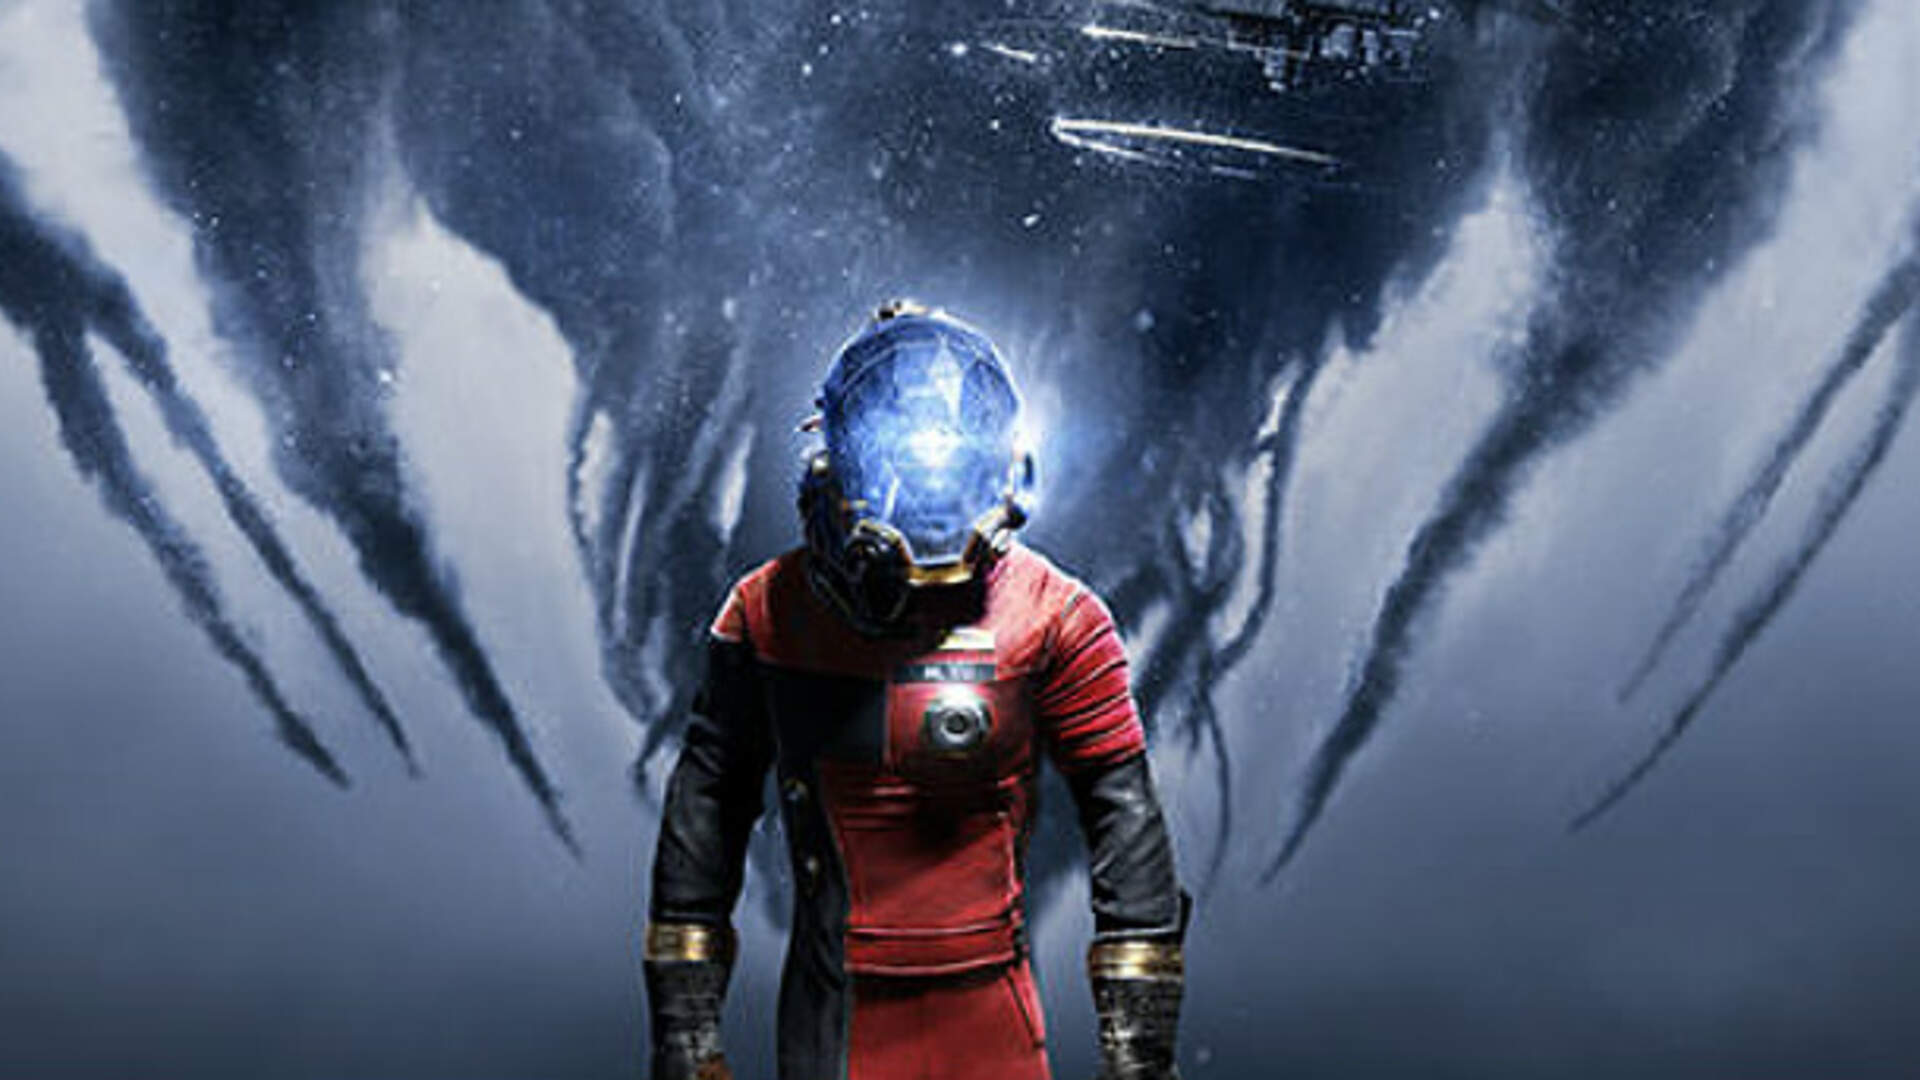 Prey Walkthrough and Guide - Level Walkthroughs, Find Secrets, Tips, Neuromods Guide, How to Survive Talos 1